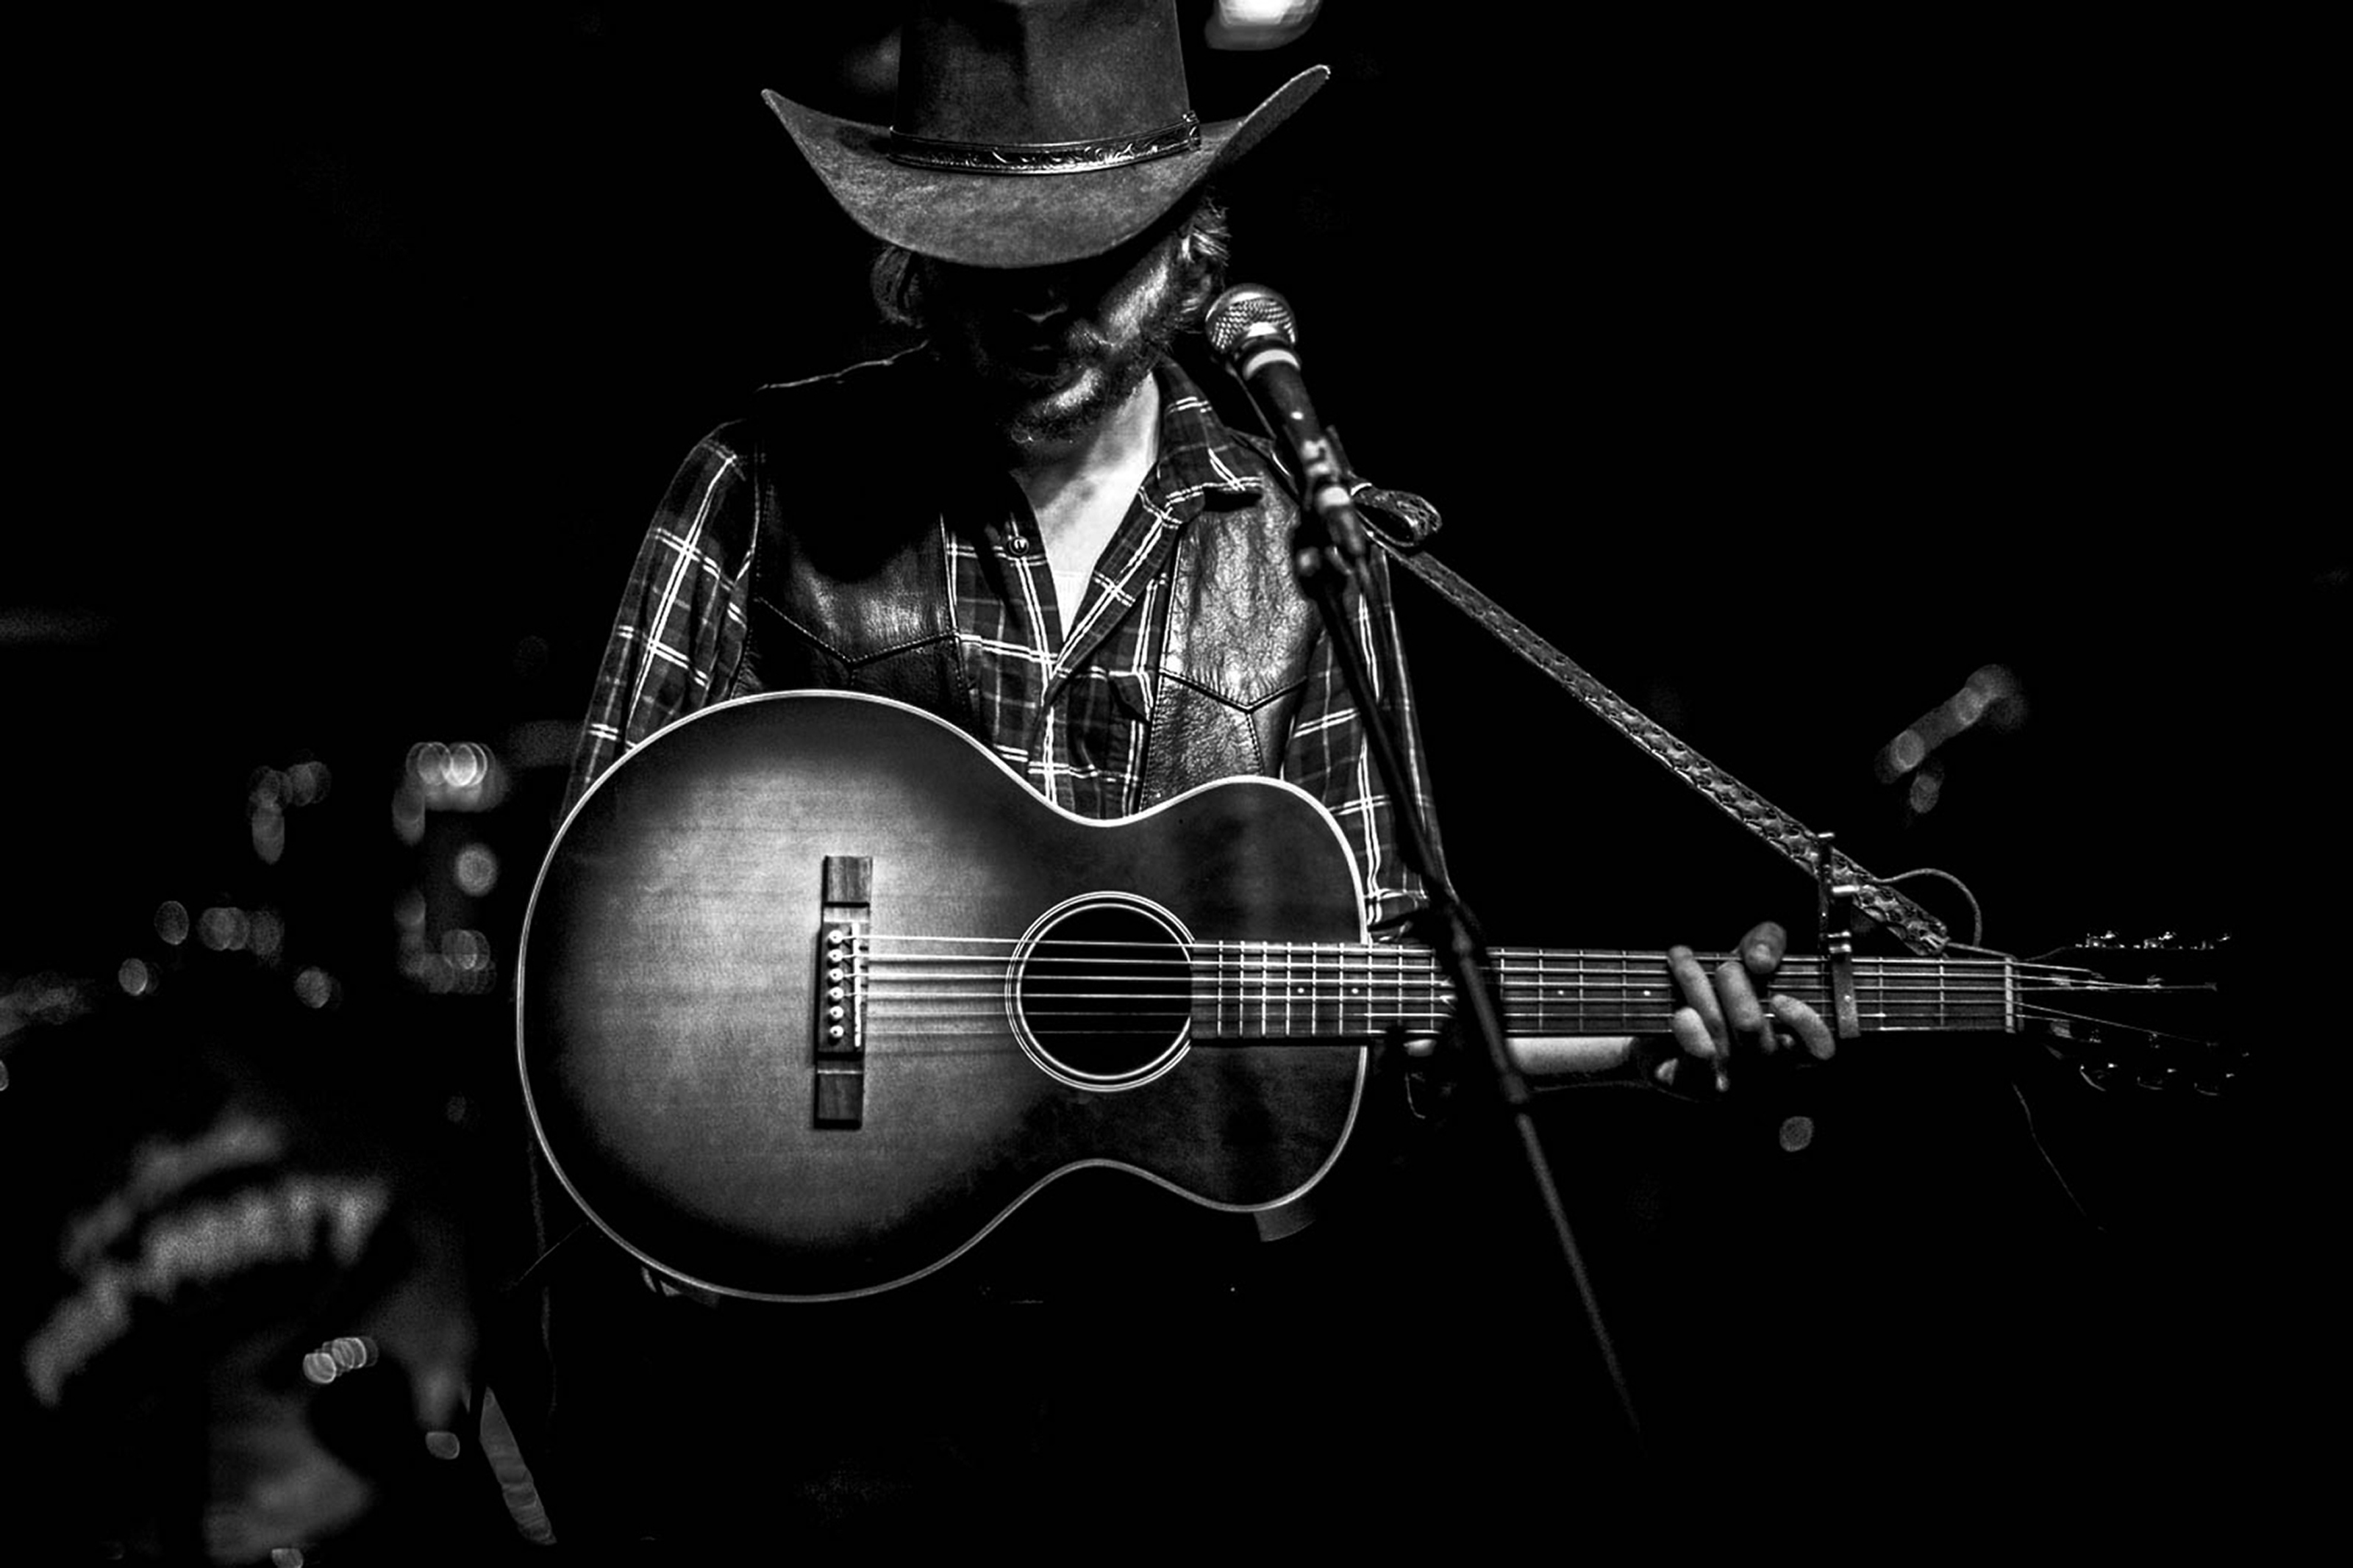 Dark empty room with window - Colter Wall And Tyler Childers